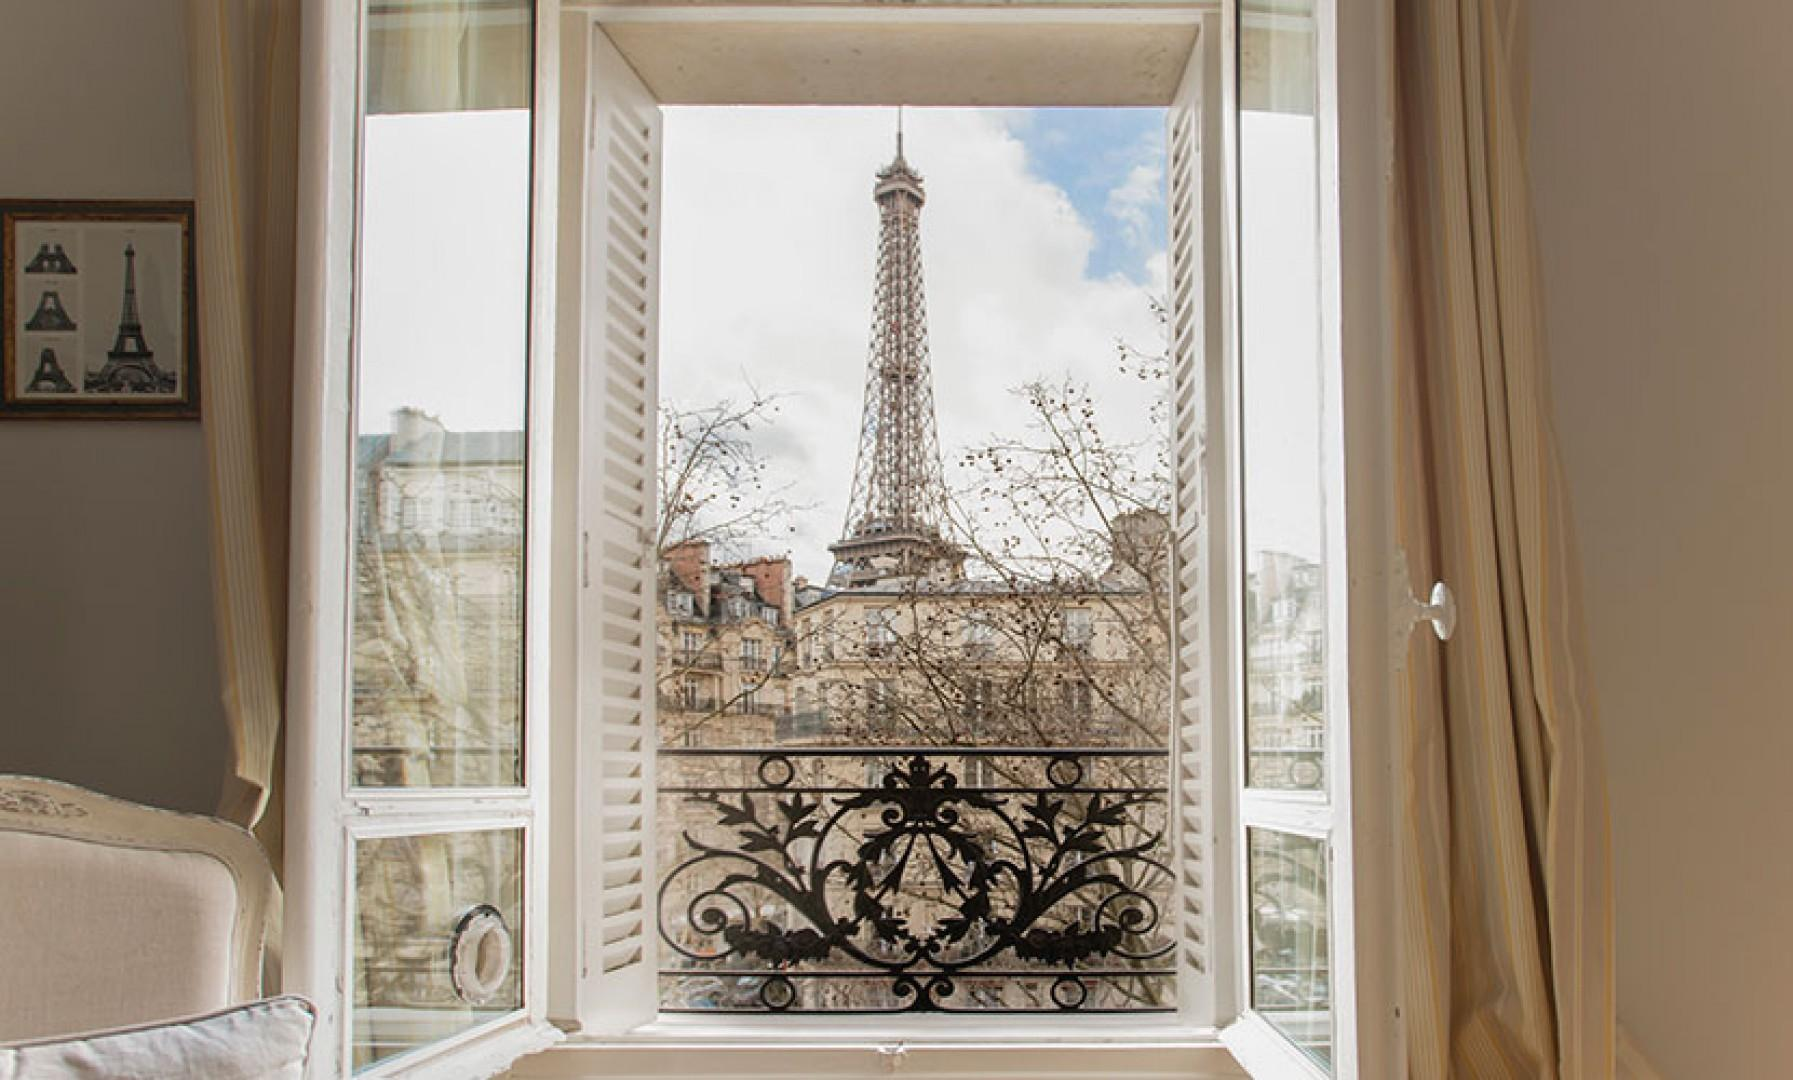 Welcome to the Jasnieres rental with picture-perfect views of the Eiffel Tower!